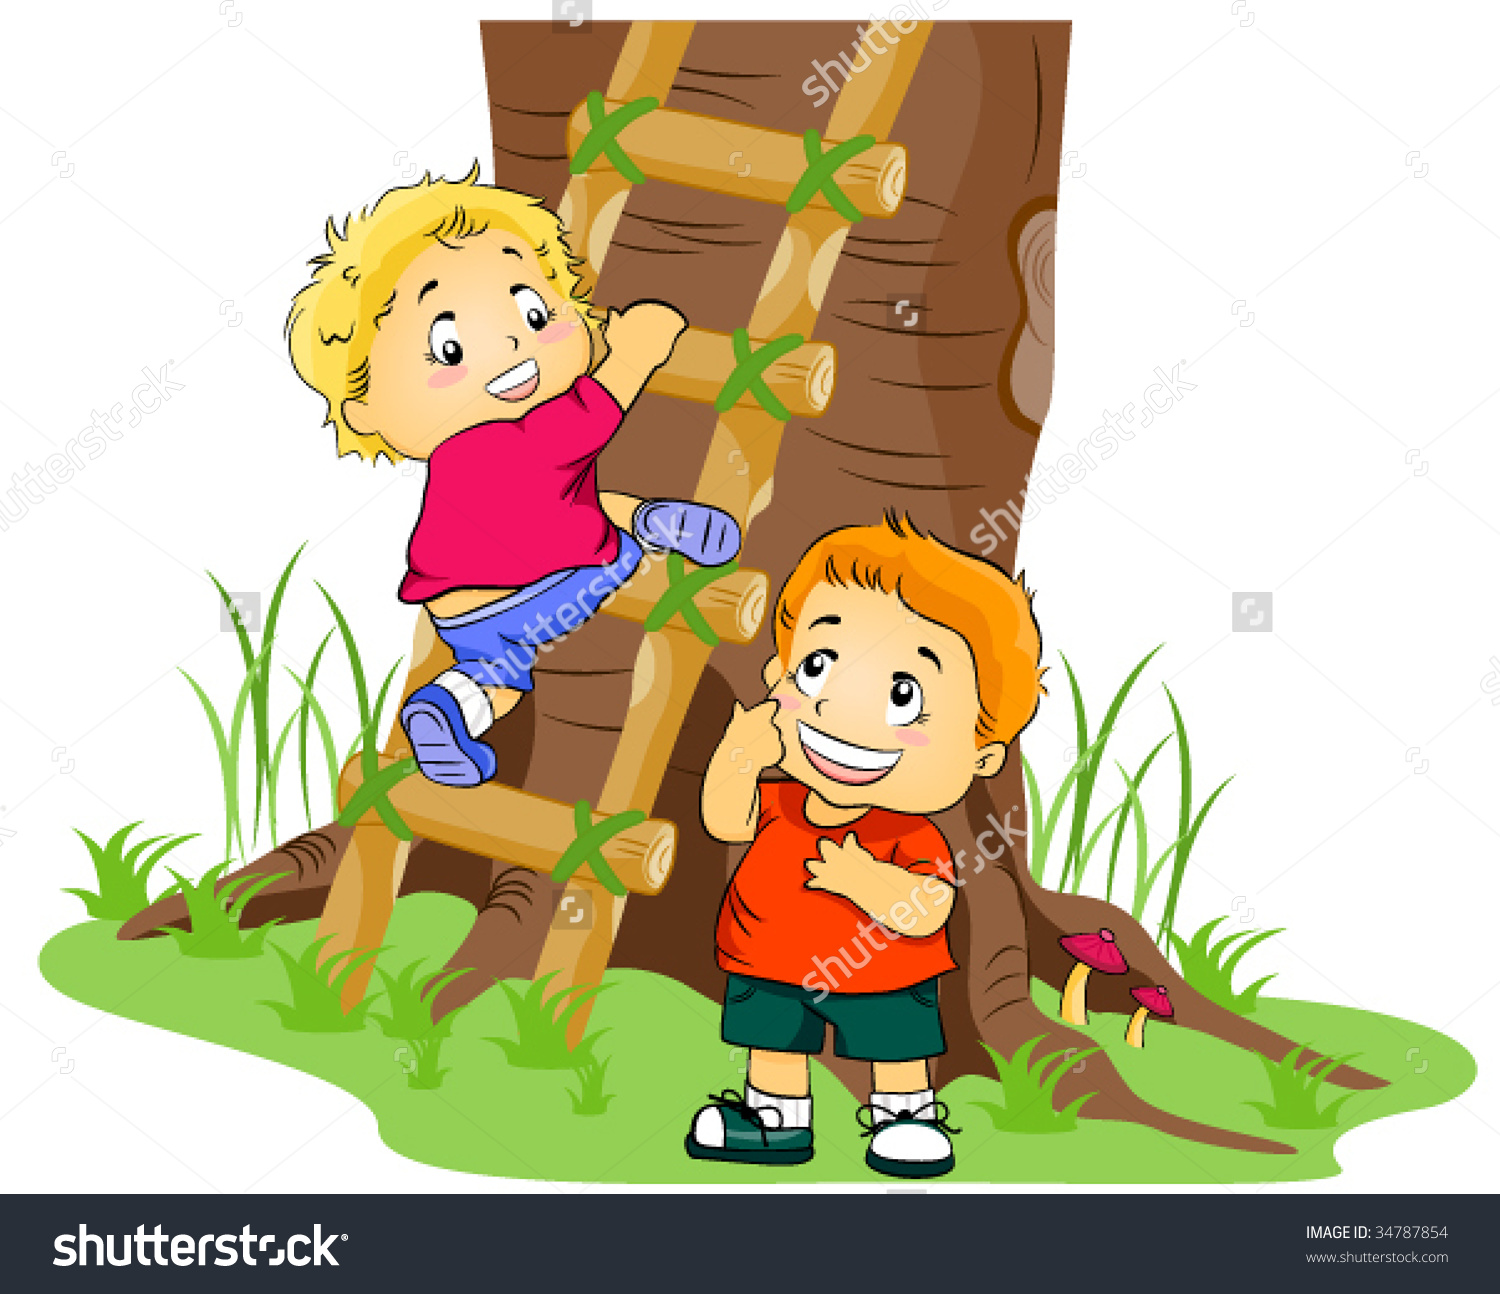 Climb clipart 20 free Cliparts | Download images on ...